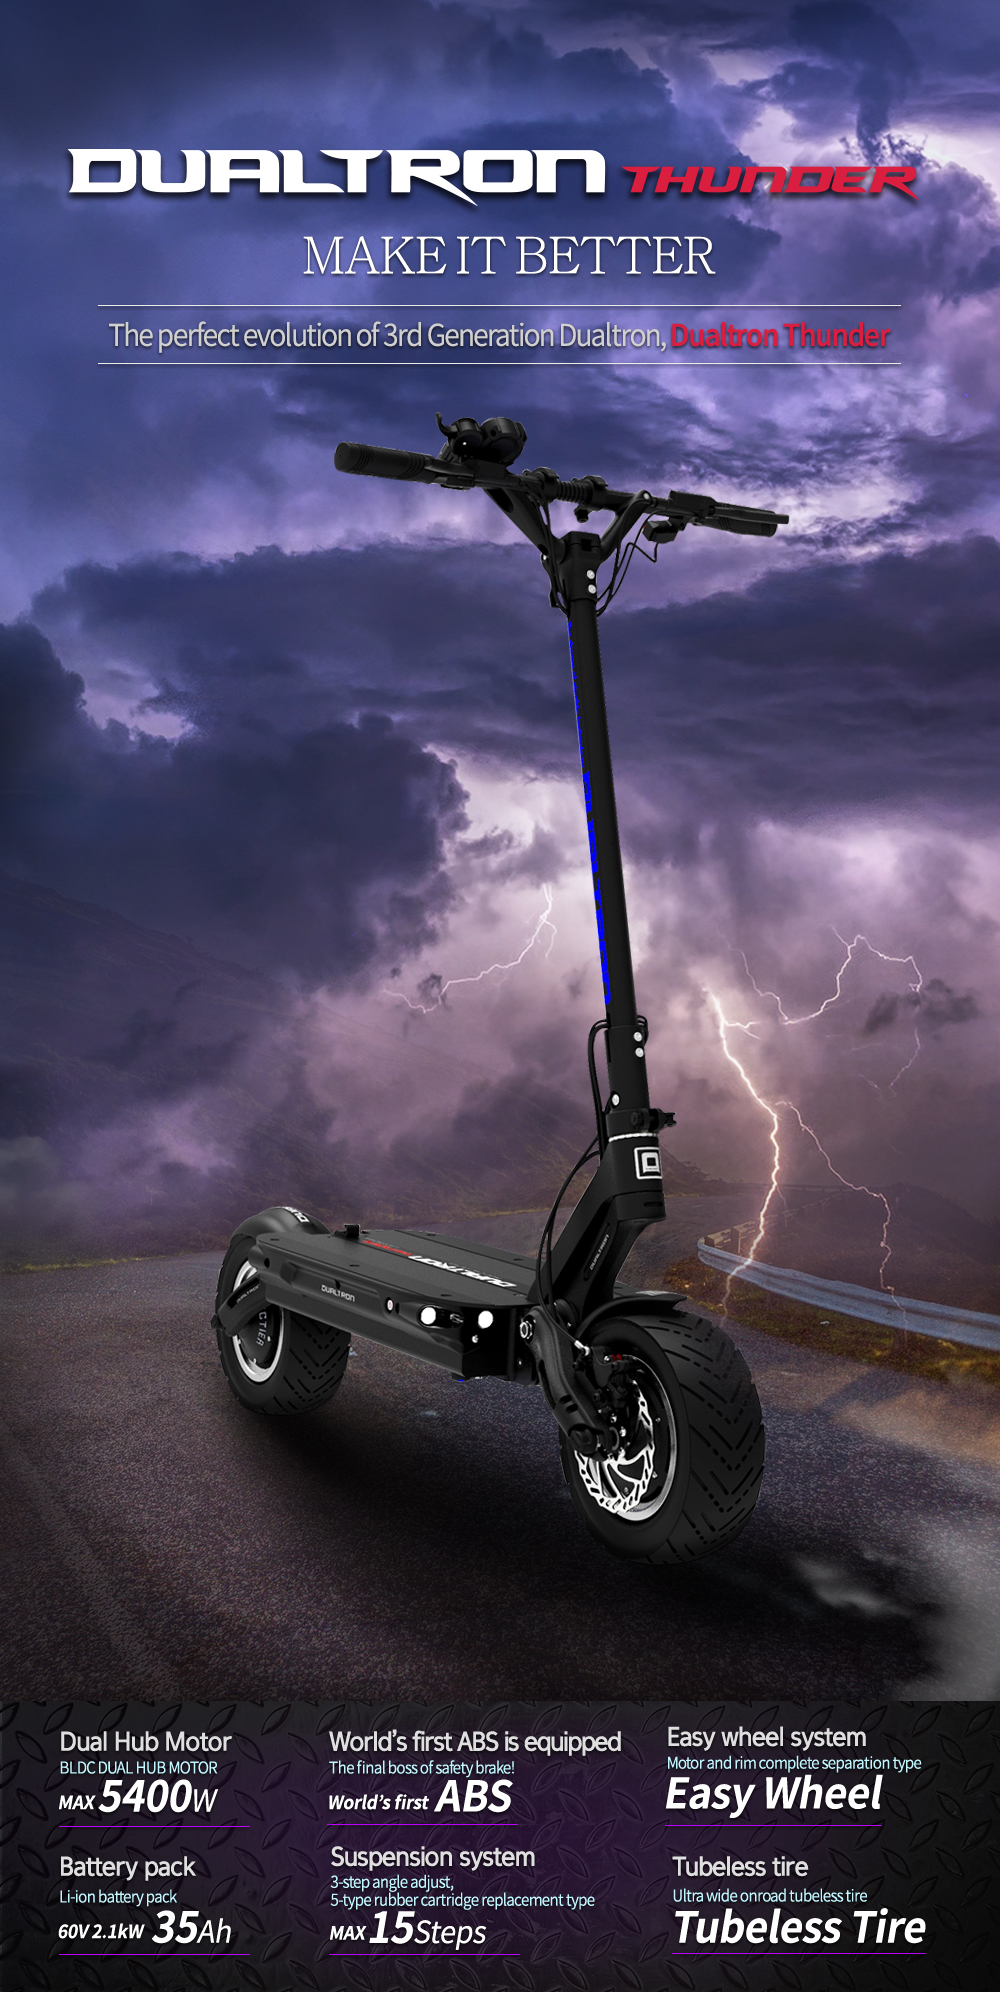 Dualtron Thunder specifications